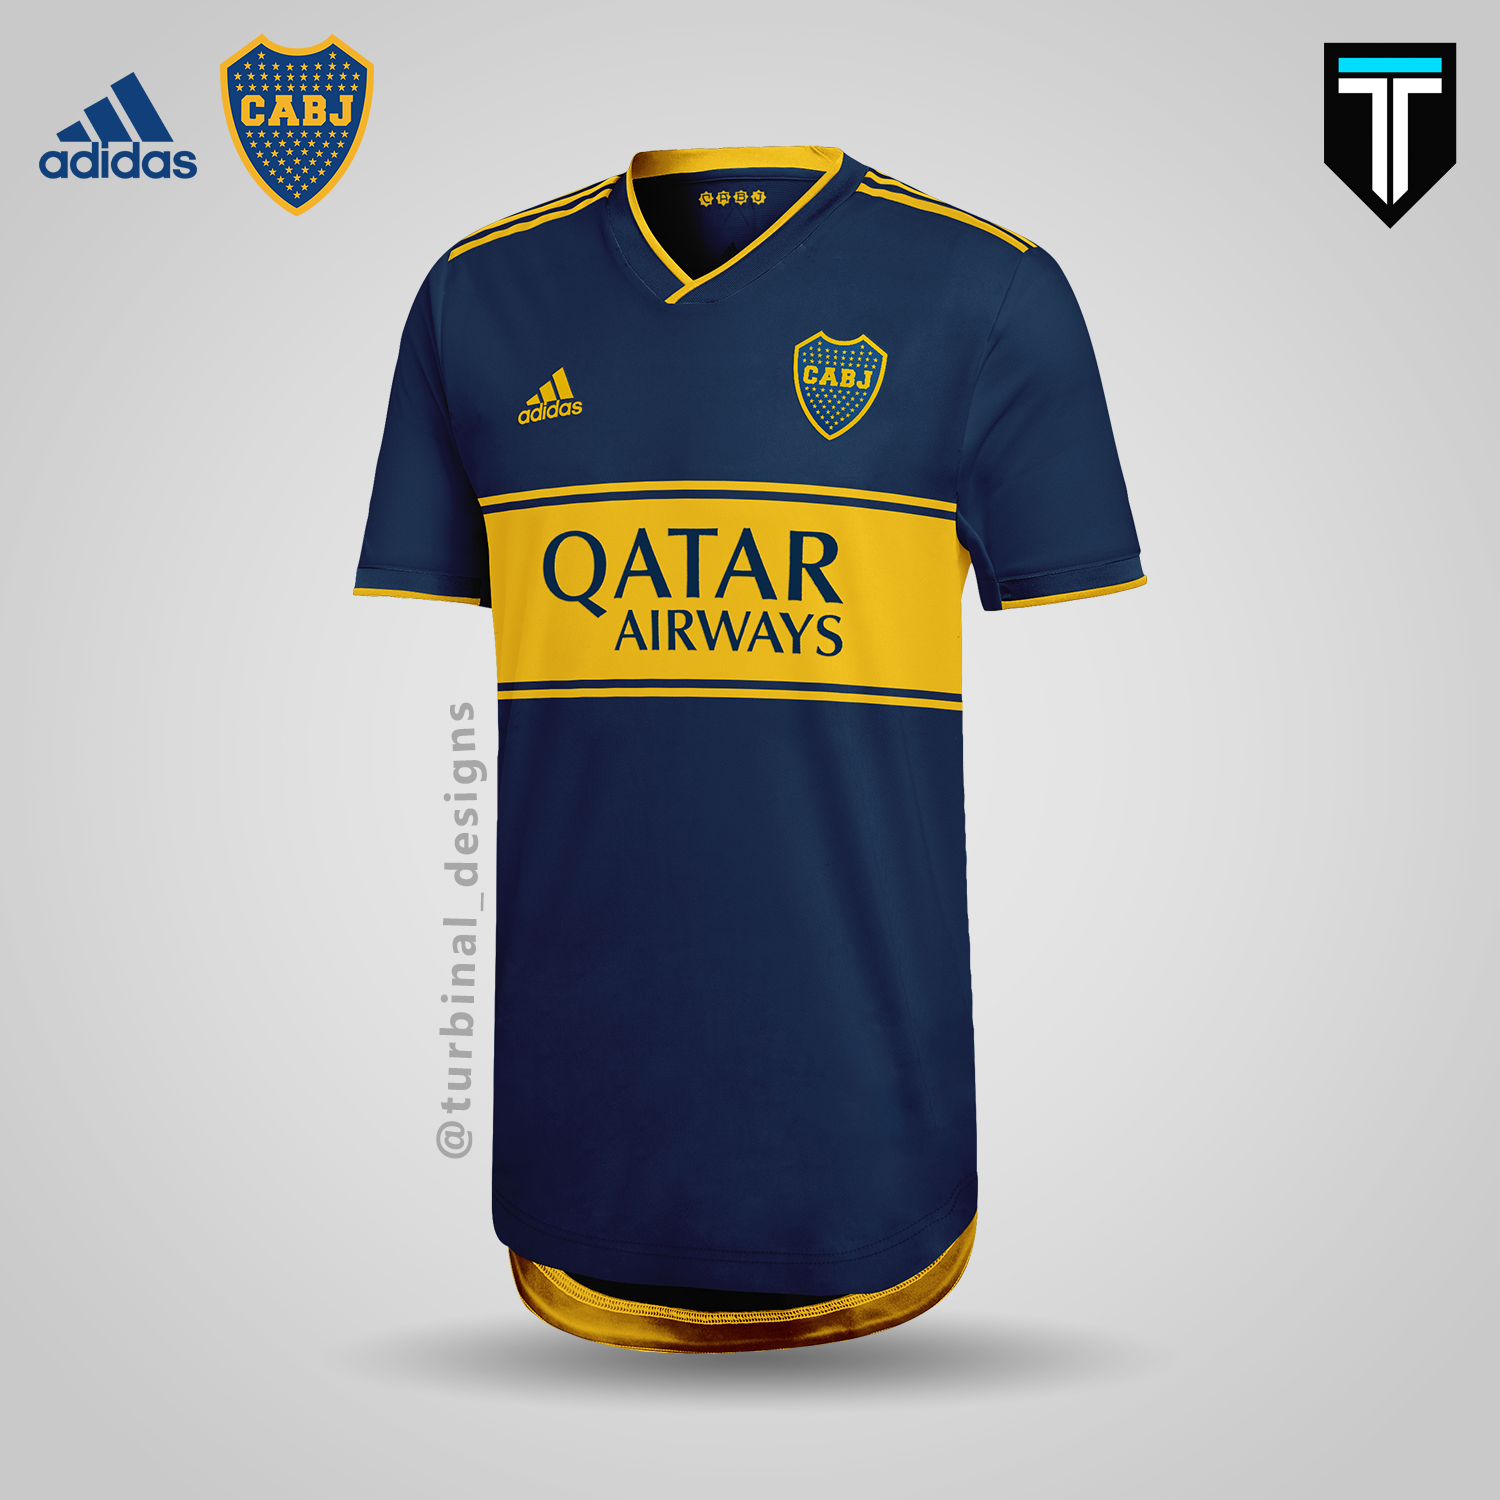 the best attitude be4c3 55178 Boca Juniors x Adidas - Home Kit